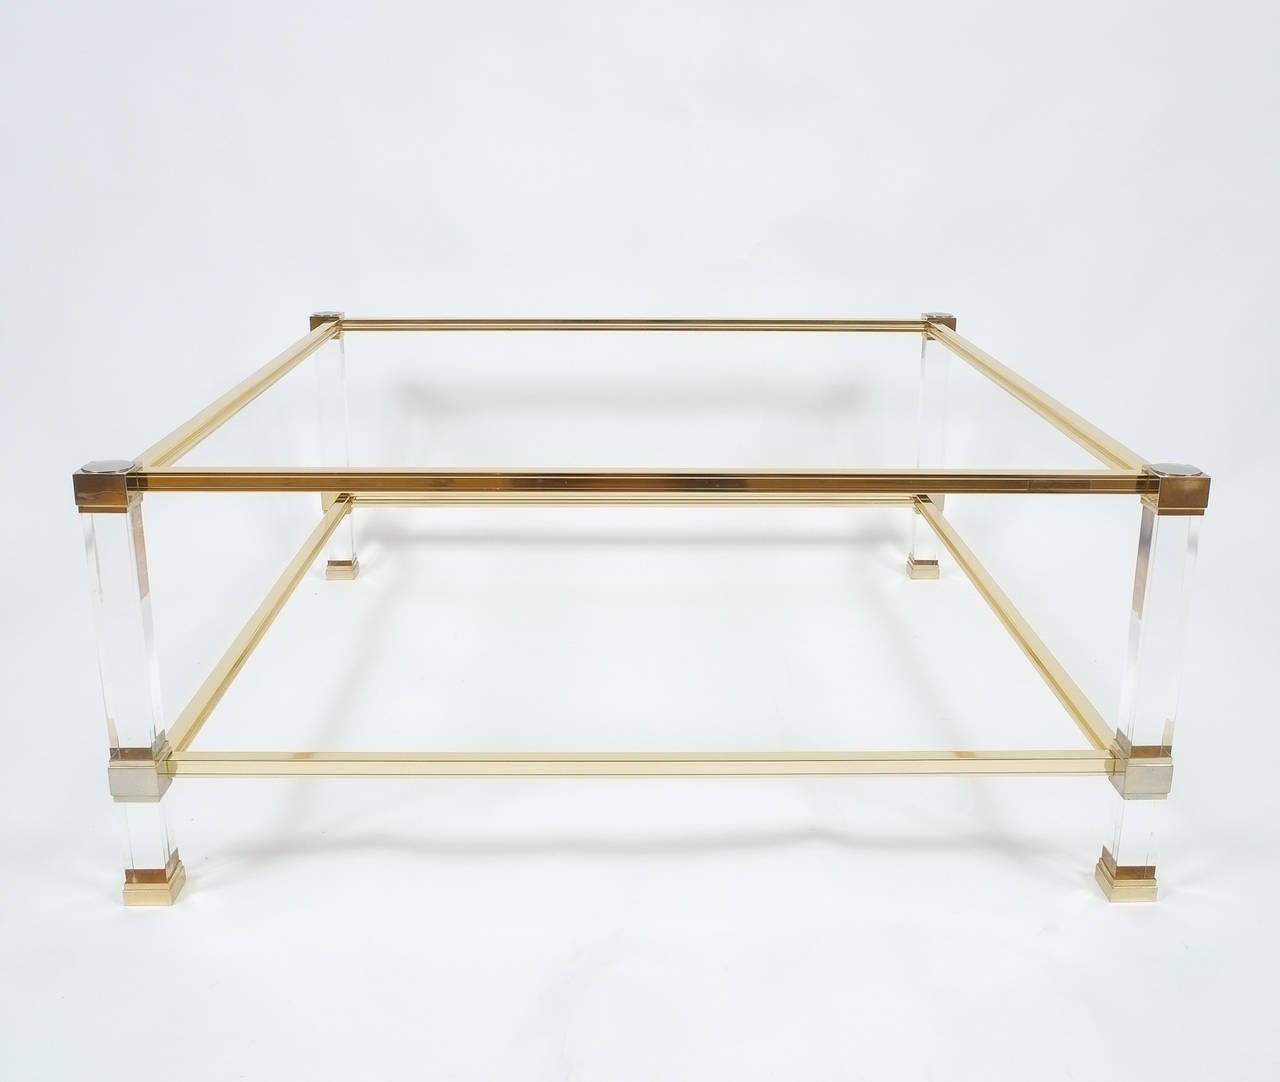 French Pair of Lucite and Brass Signed Coffee Tables by Pierre Vandel, 1970